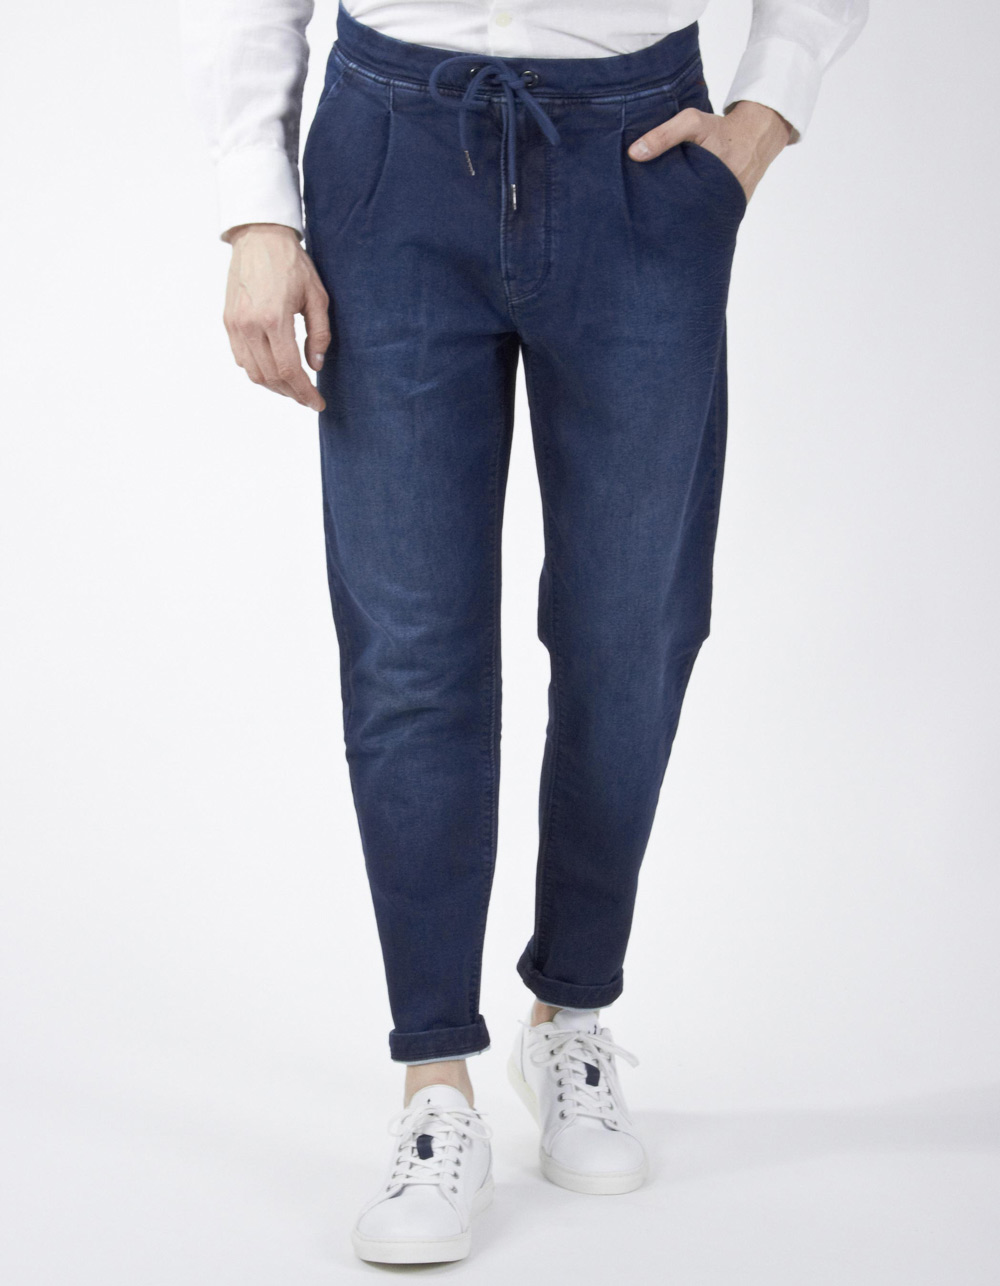 Dark navy blue jogging trousers